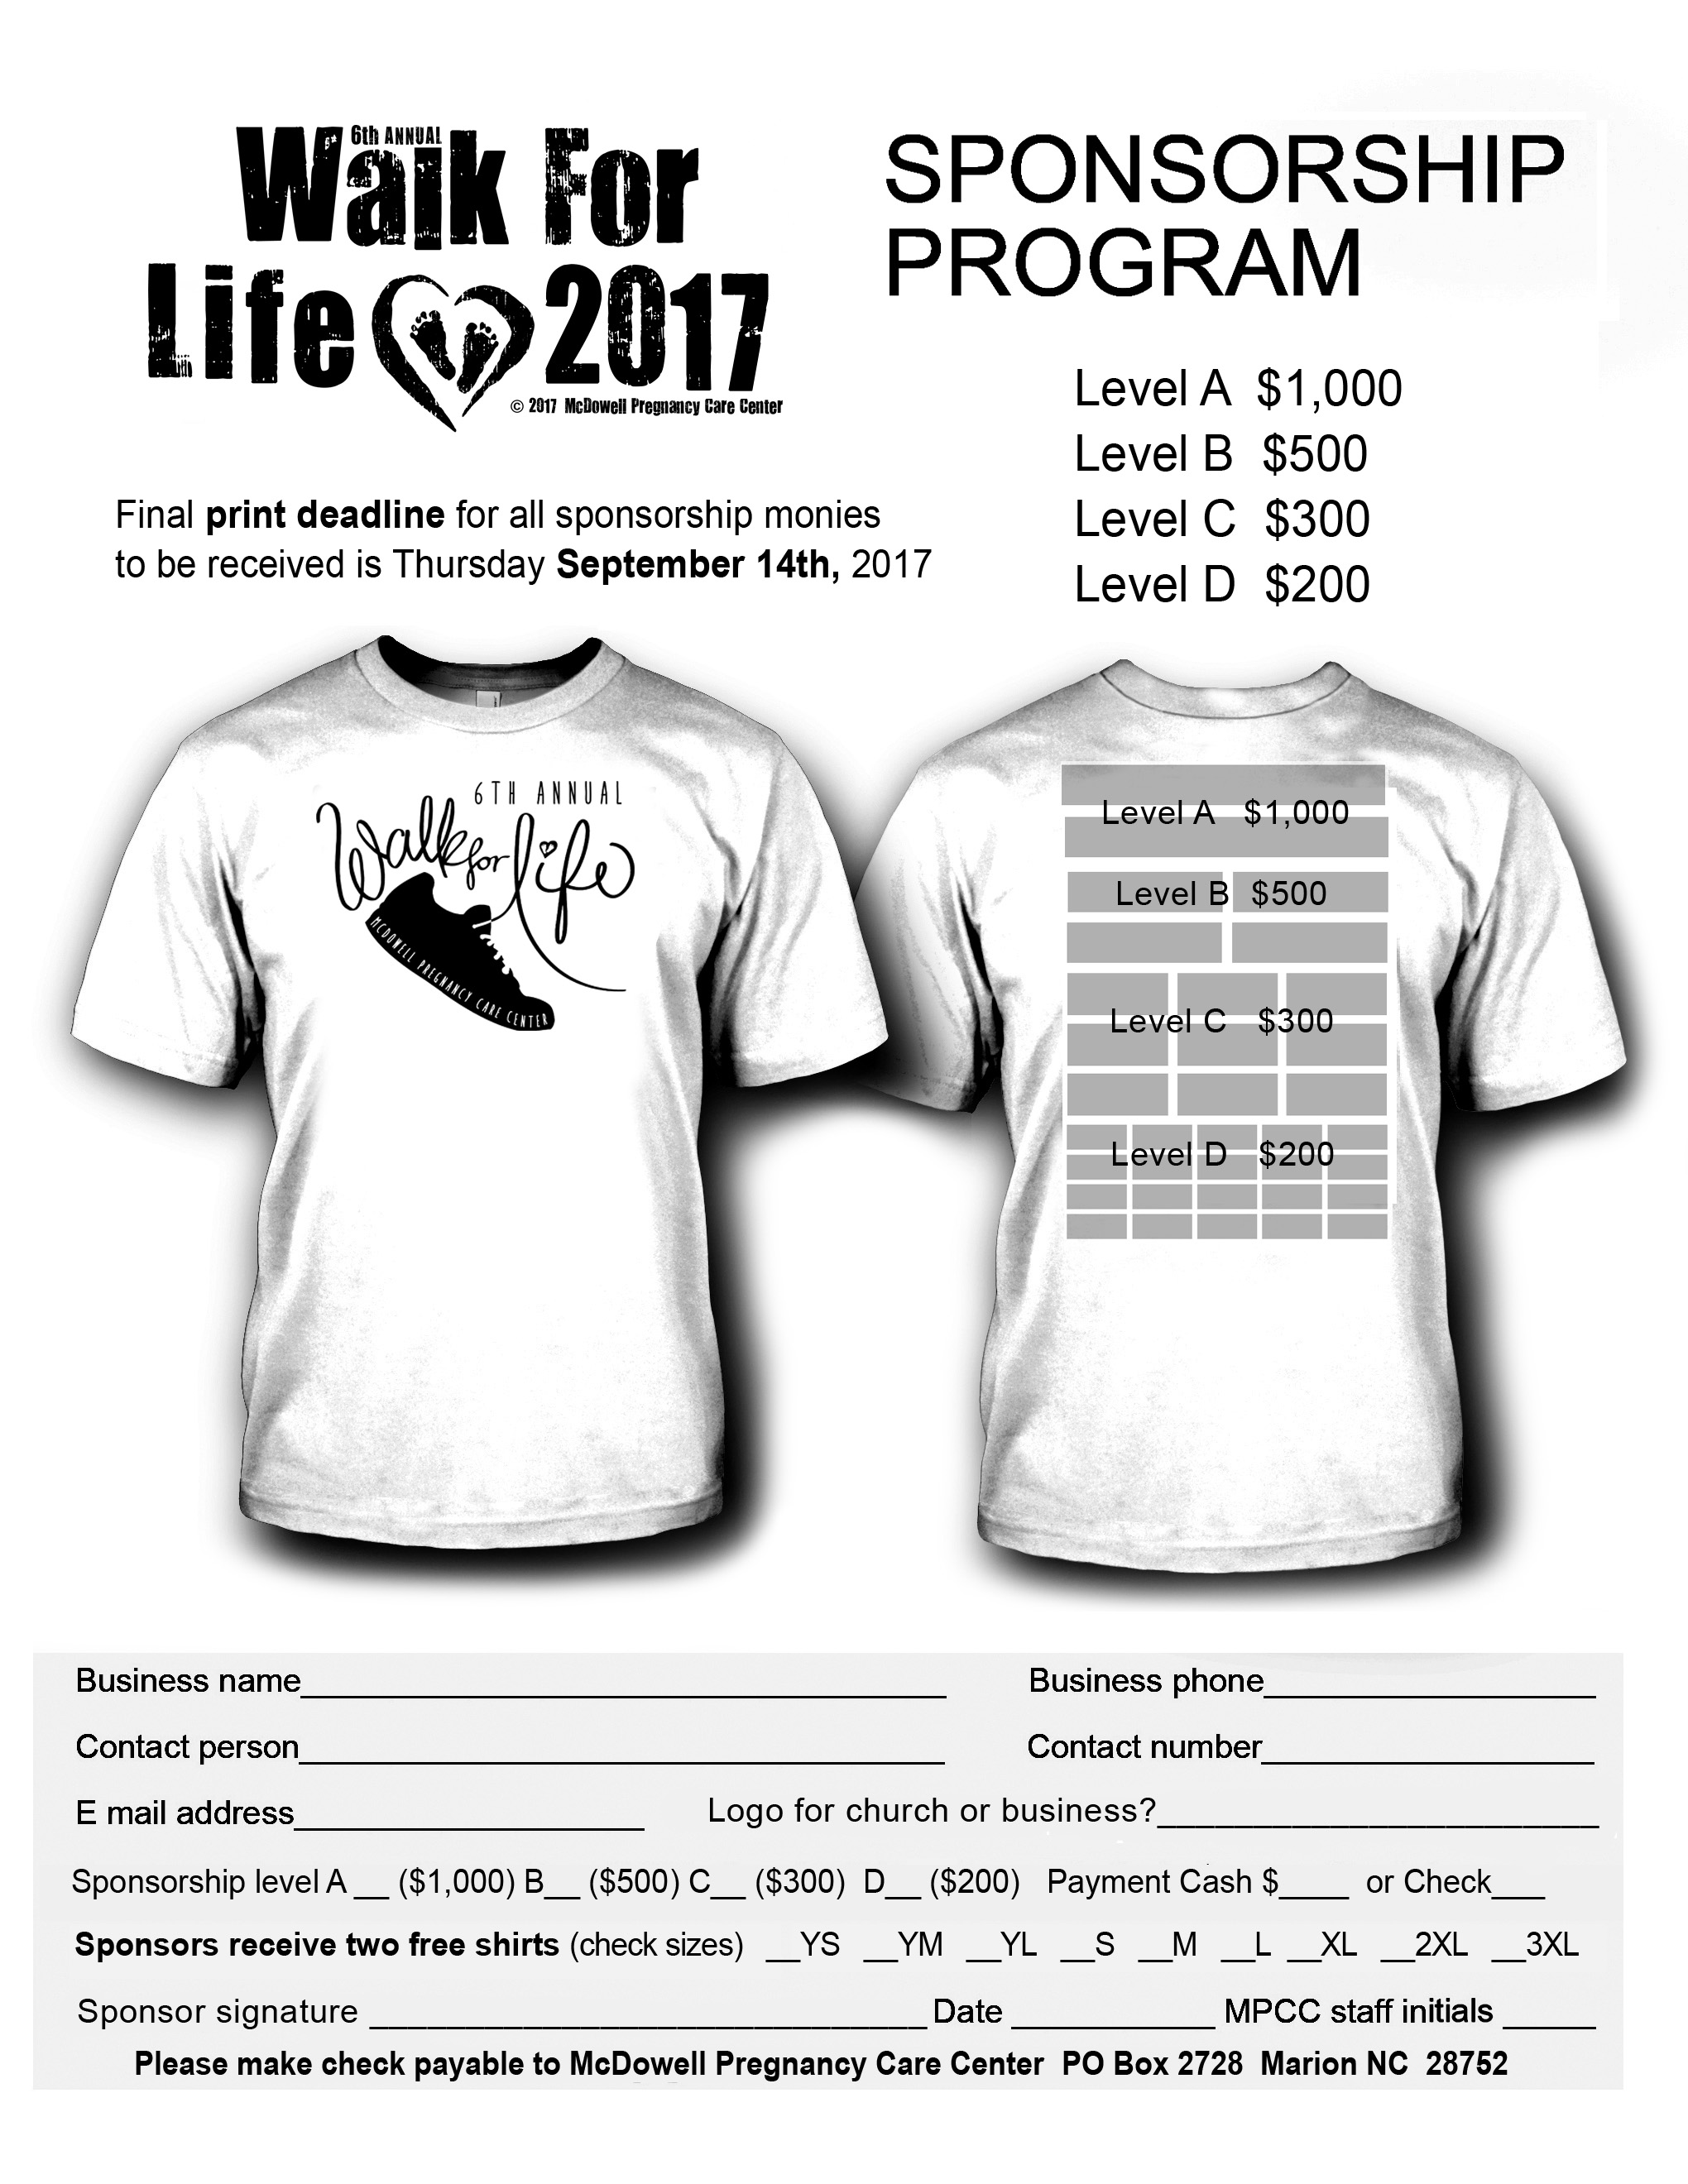 Walk for life mcdowell pregnancy care center for Sponsor t shirt design